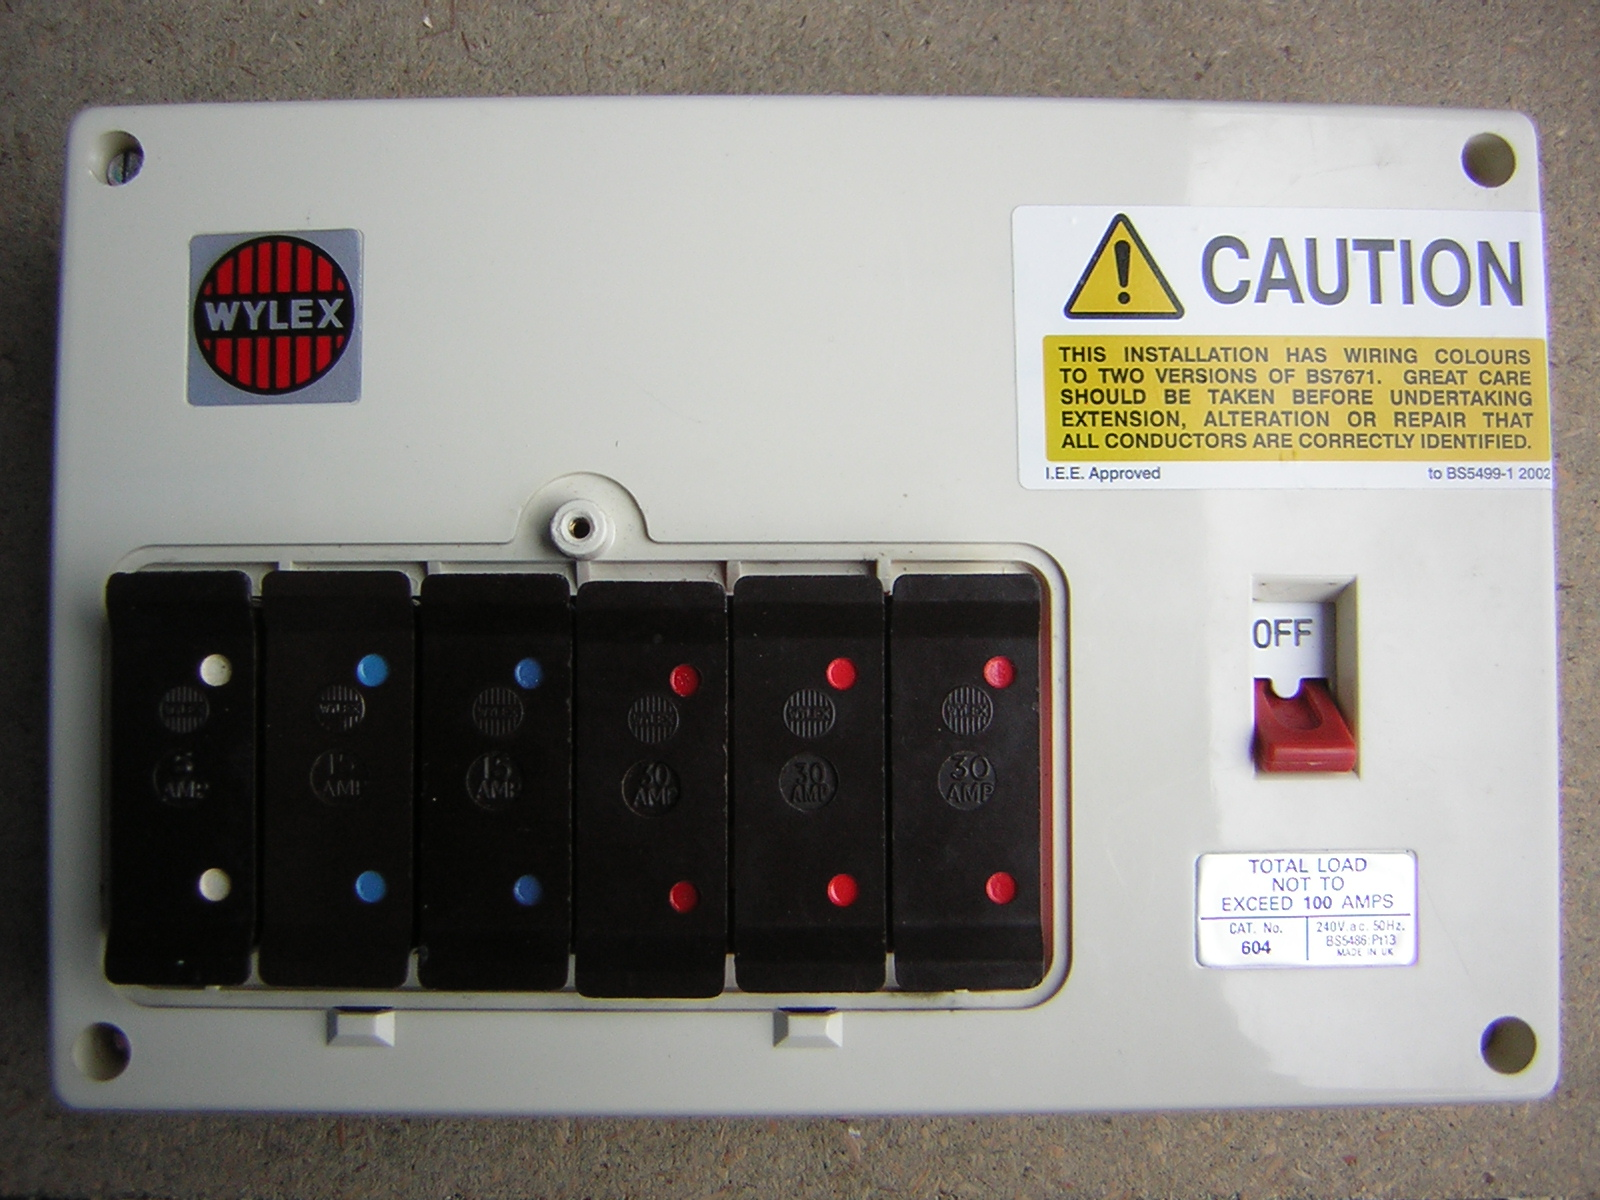 Wylex fuse box not working wiring diagram wylex fuse box colours wiring diagram u2022 rh growbyte co wylex consumer unit 10 wiring a way wylex rcd asfbconference2016 Choice Image